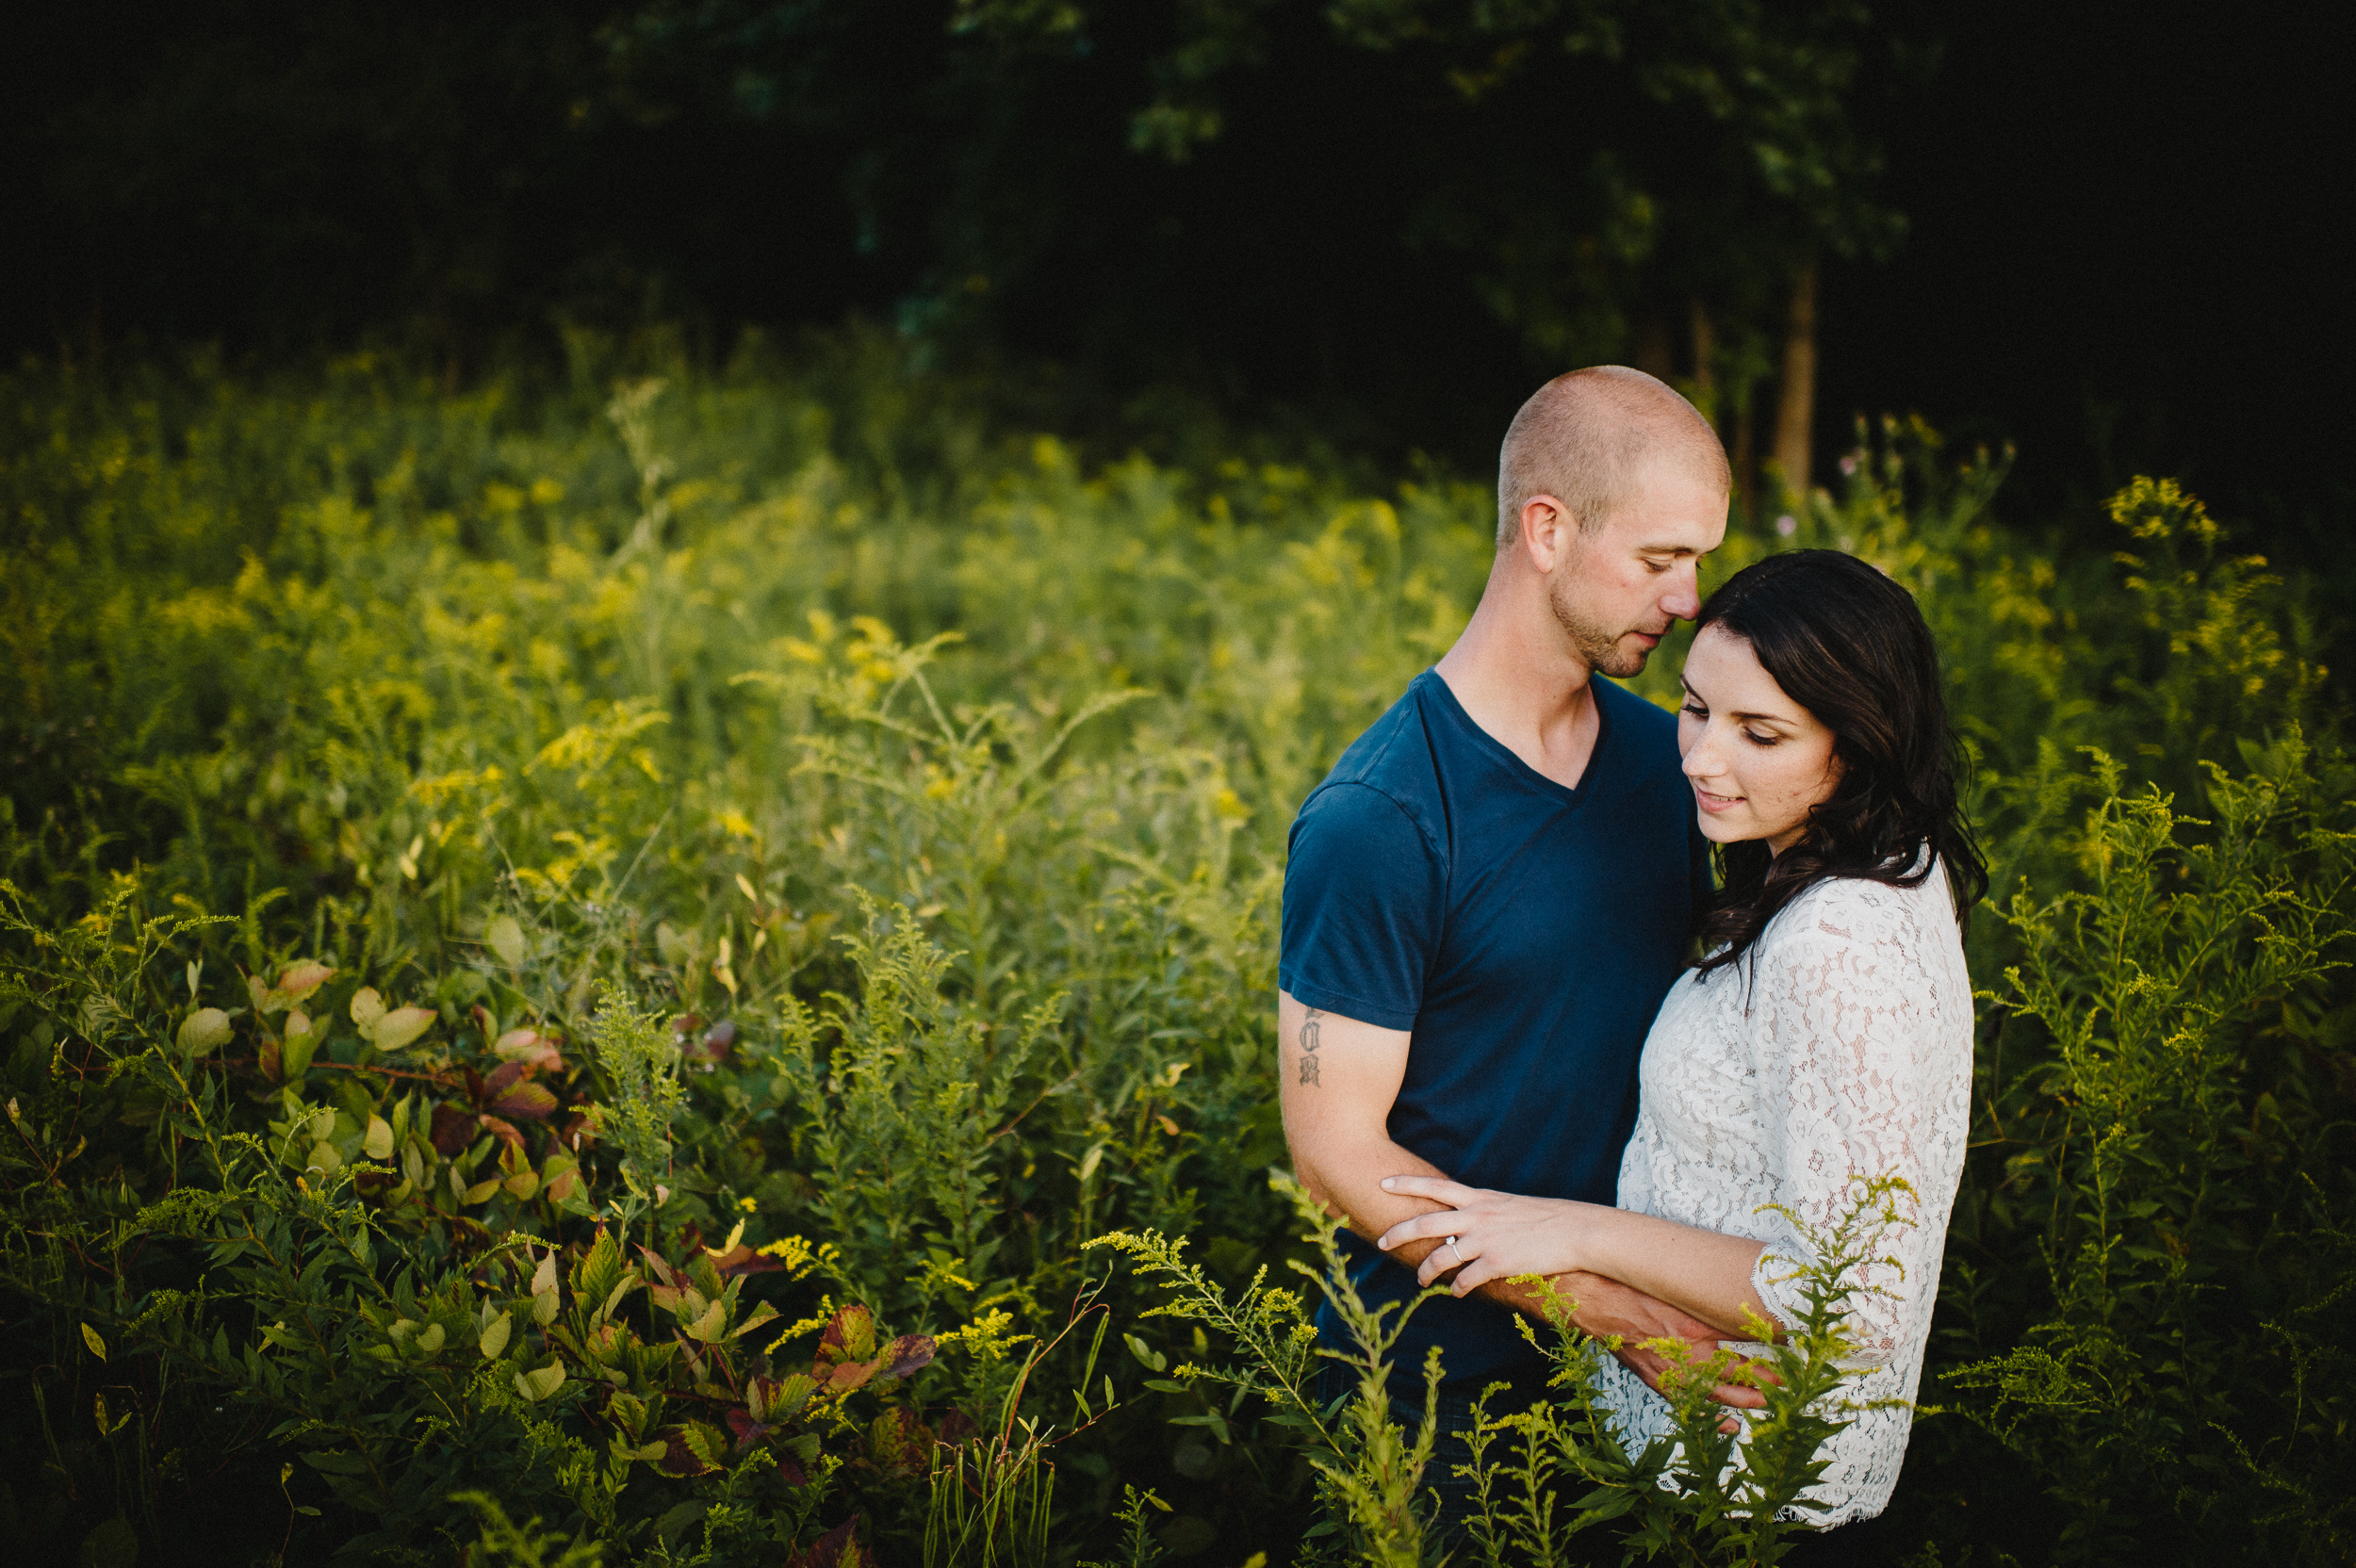 pat-robinson-photography-pa-engagement-session-15.jpg